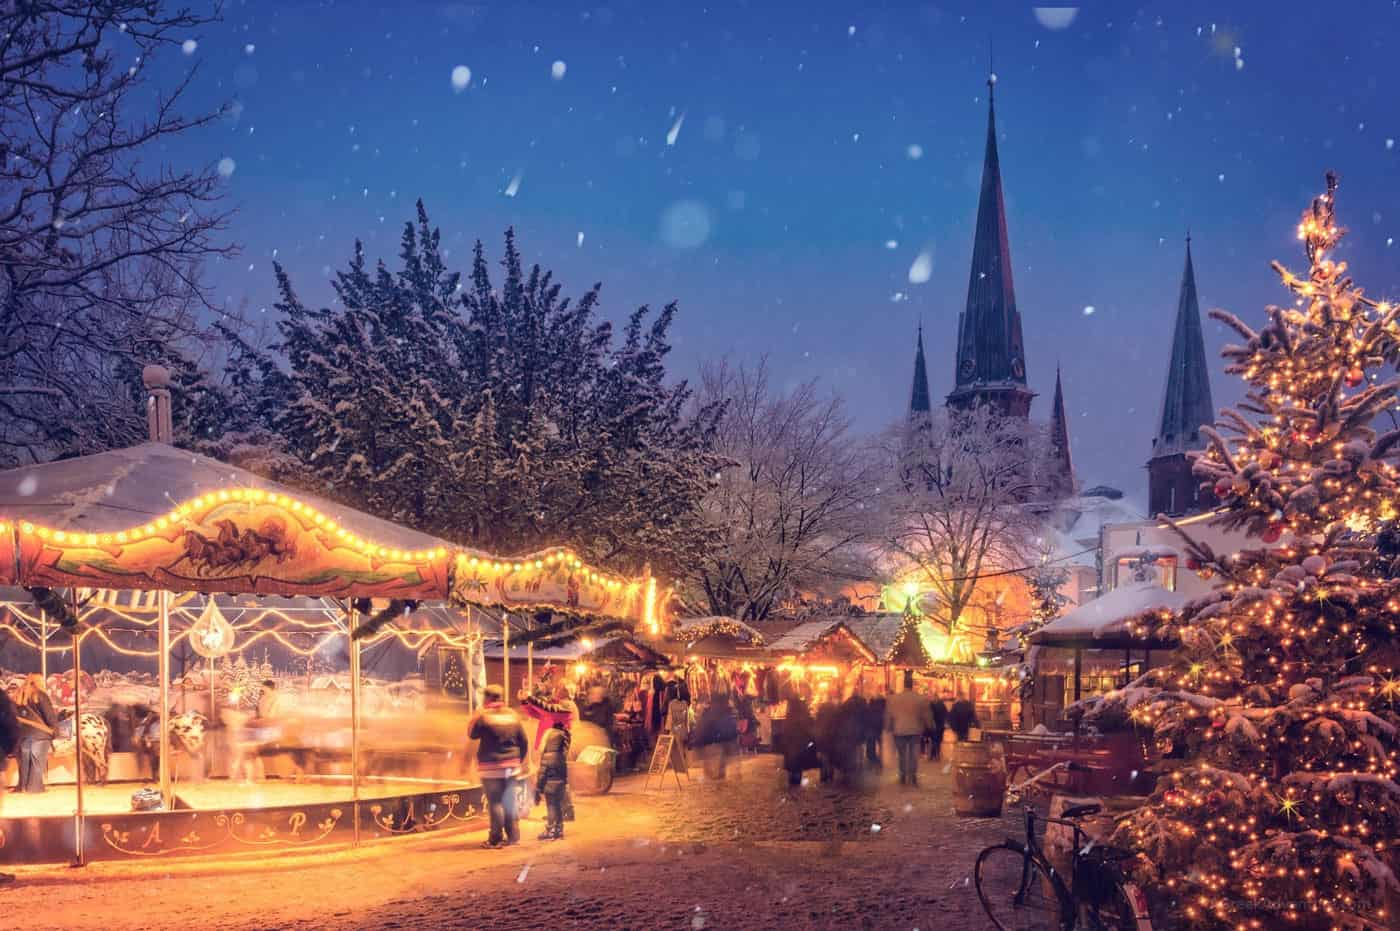 Christmas Markets 2021 Best Christmas Markets In Europe 2021 Mindful Travel Experiences